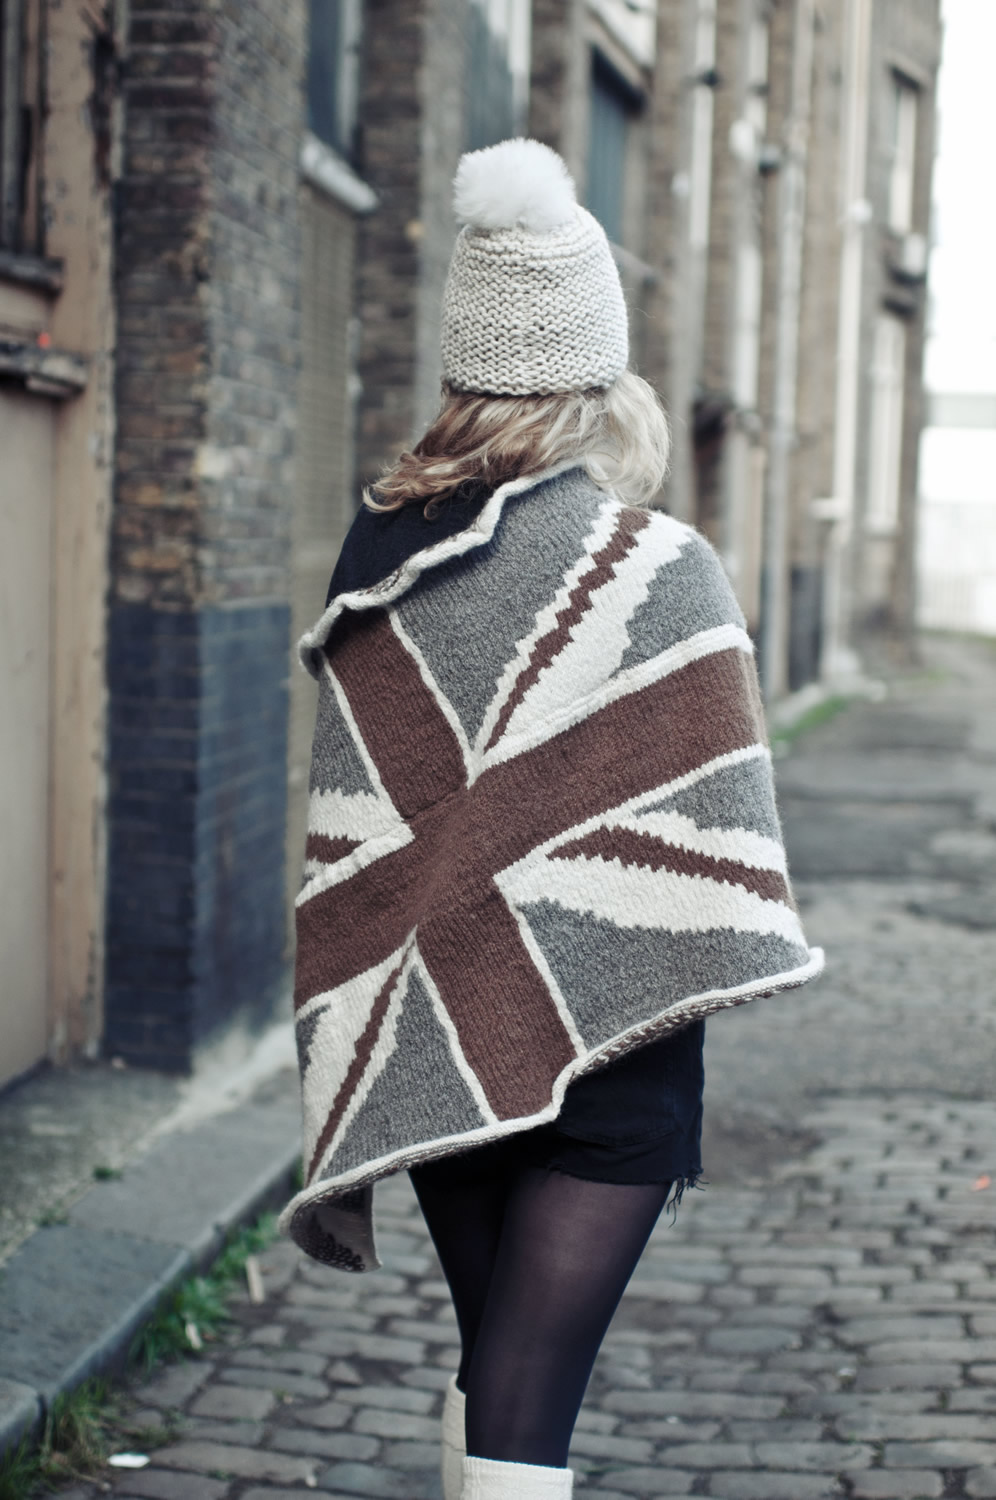 Portrait Union Jack